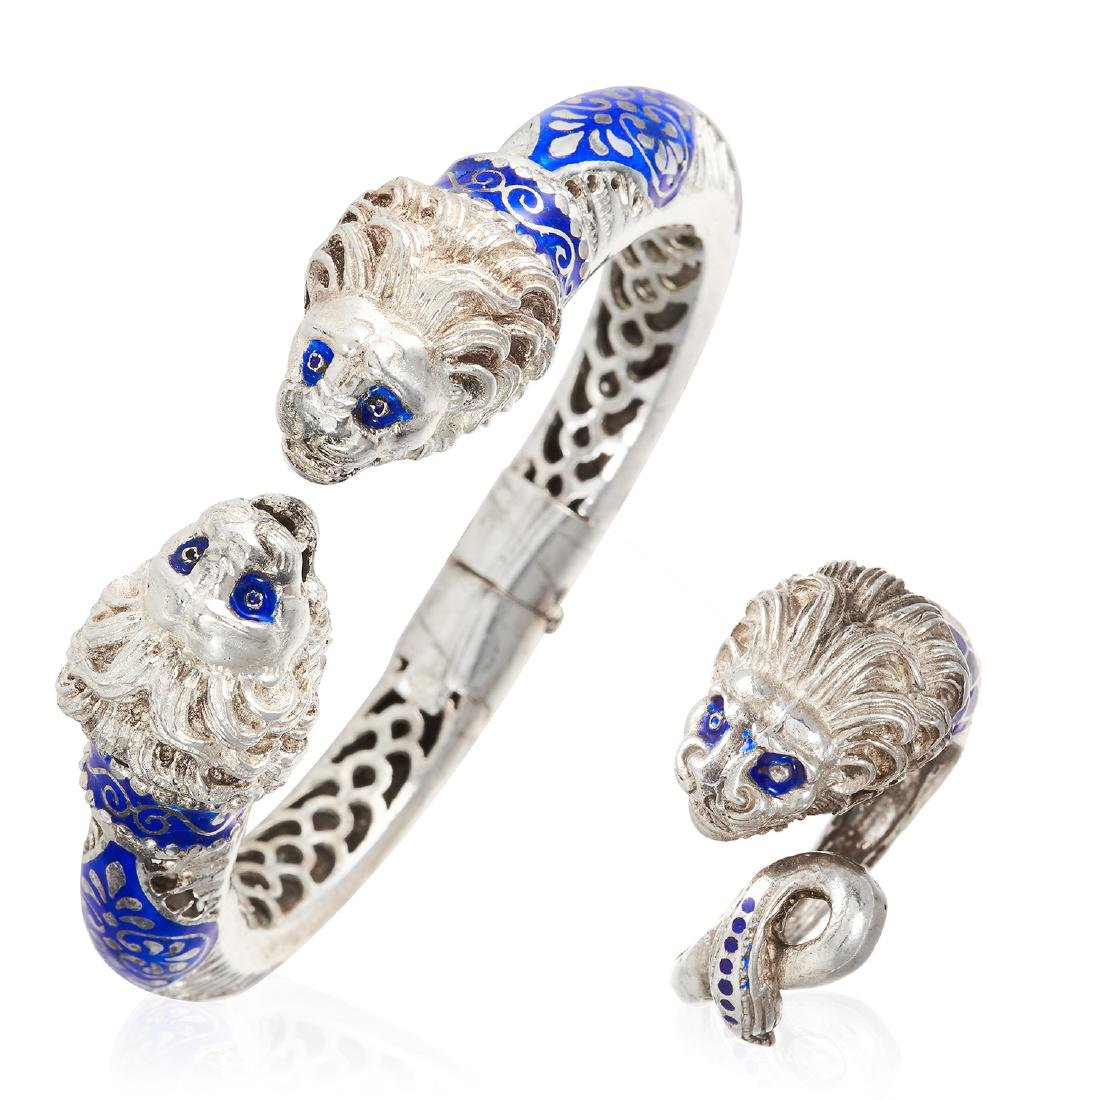 AN ENAMEL LION BANGLE AND RING SUITE in sterling